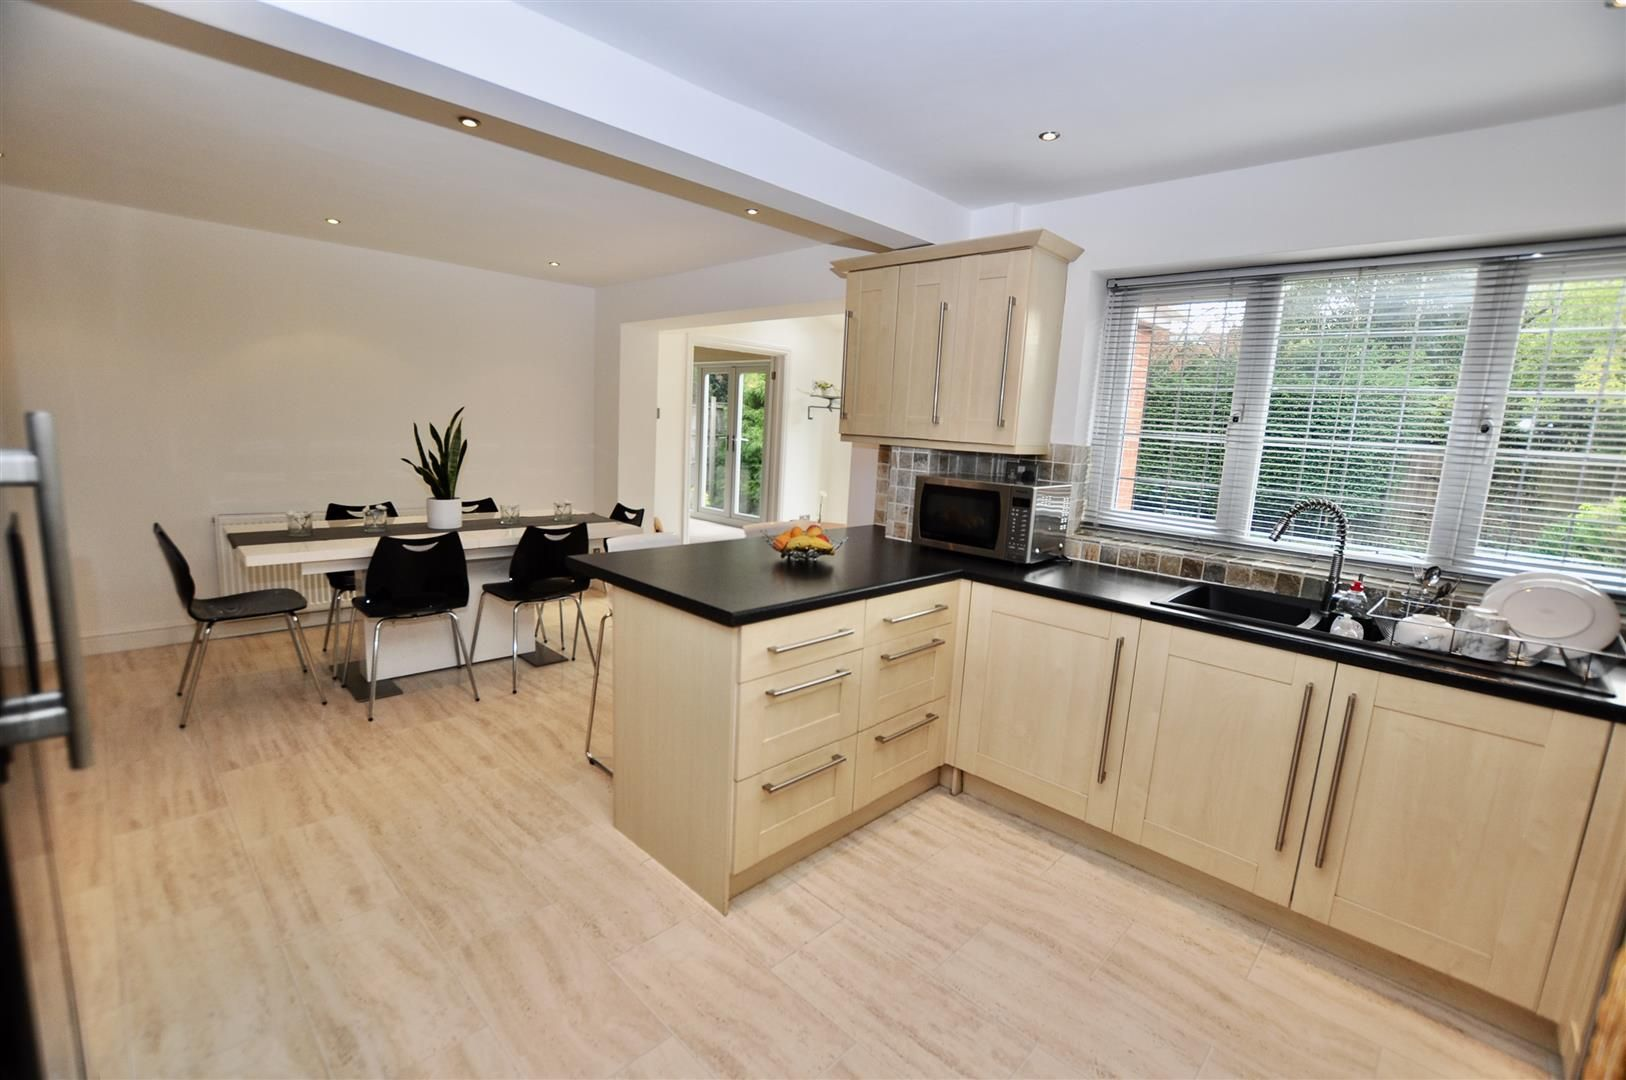 4 bed house for sale in Hagley 12